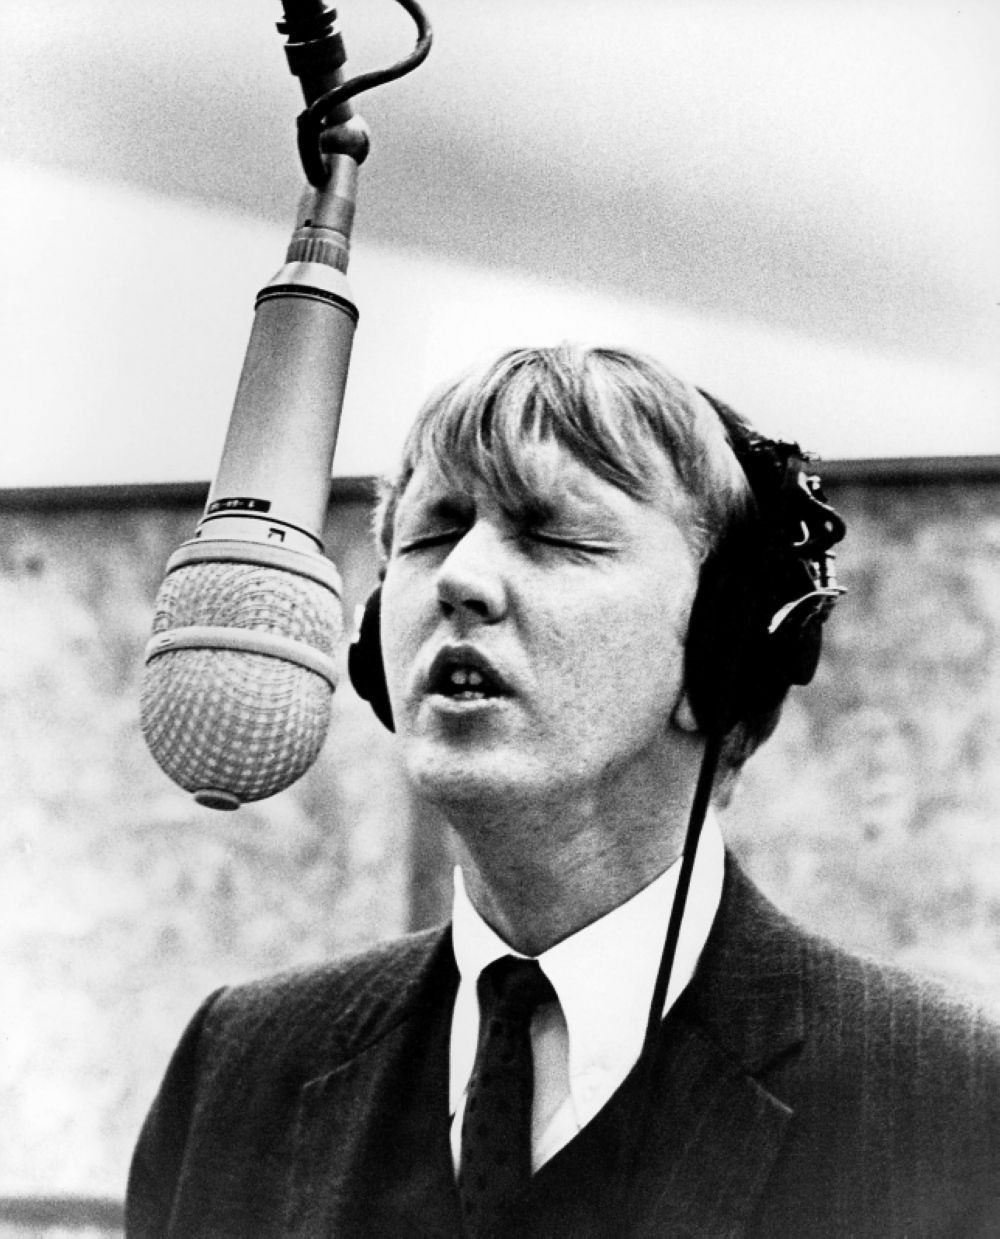 Harry Nilsson Harry nilsson, Harry nilsson without you